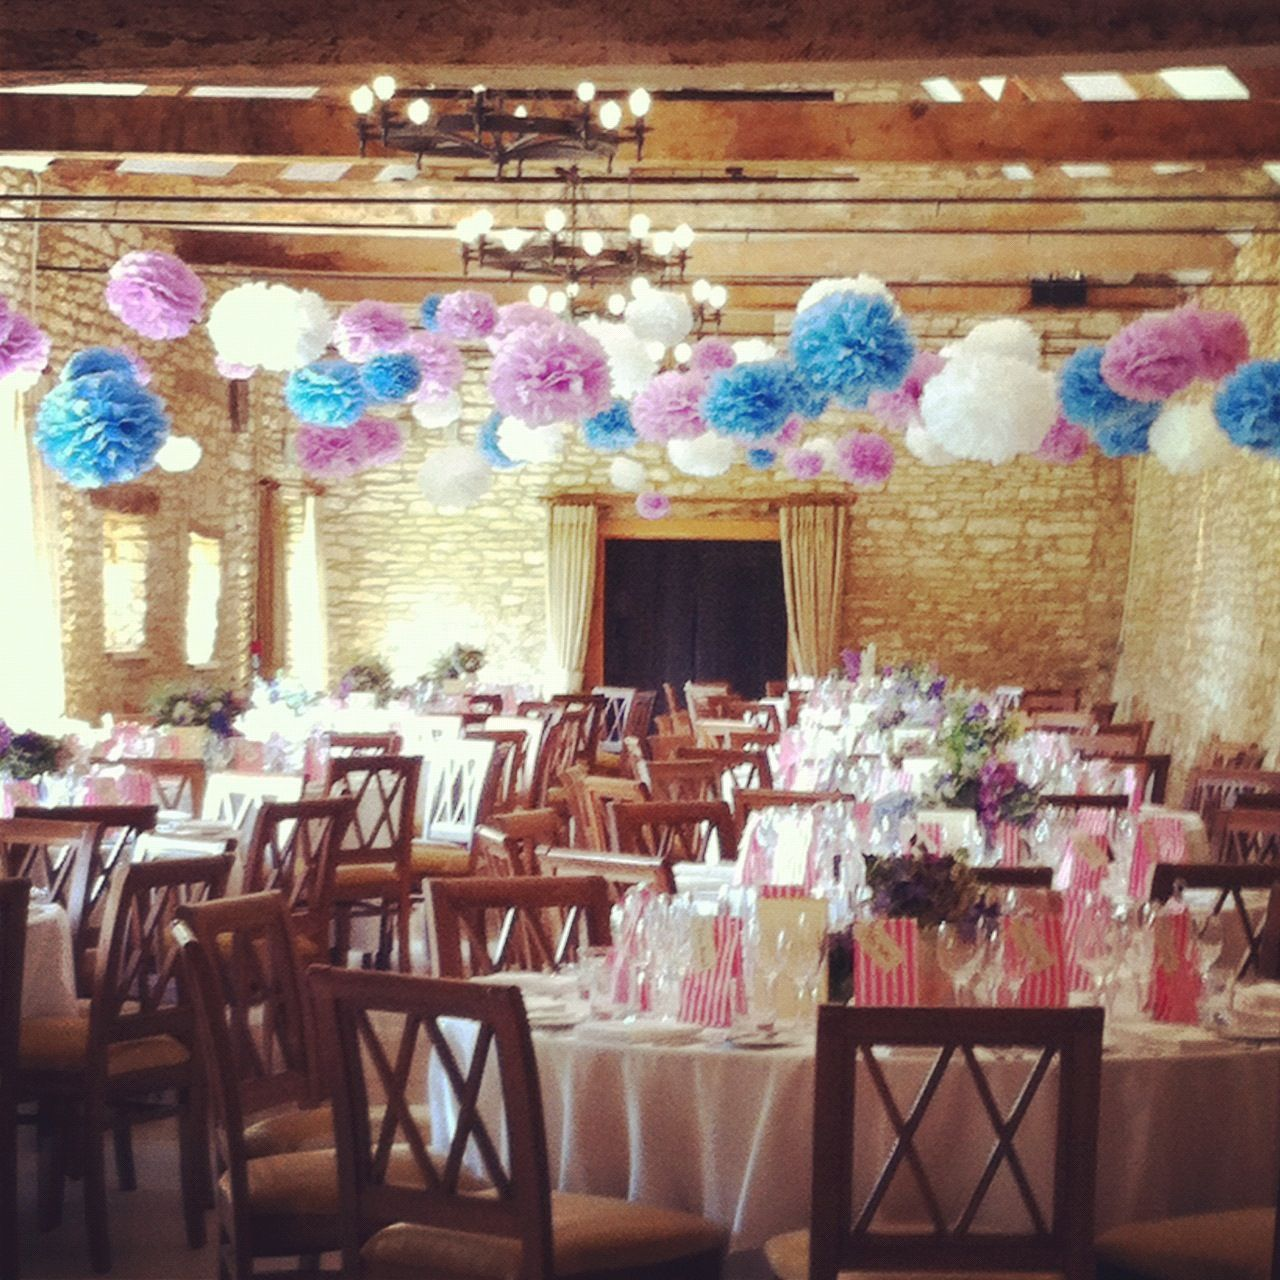 How About Hanging Pom Poms From The Beams In Your Colours